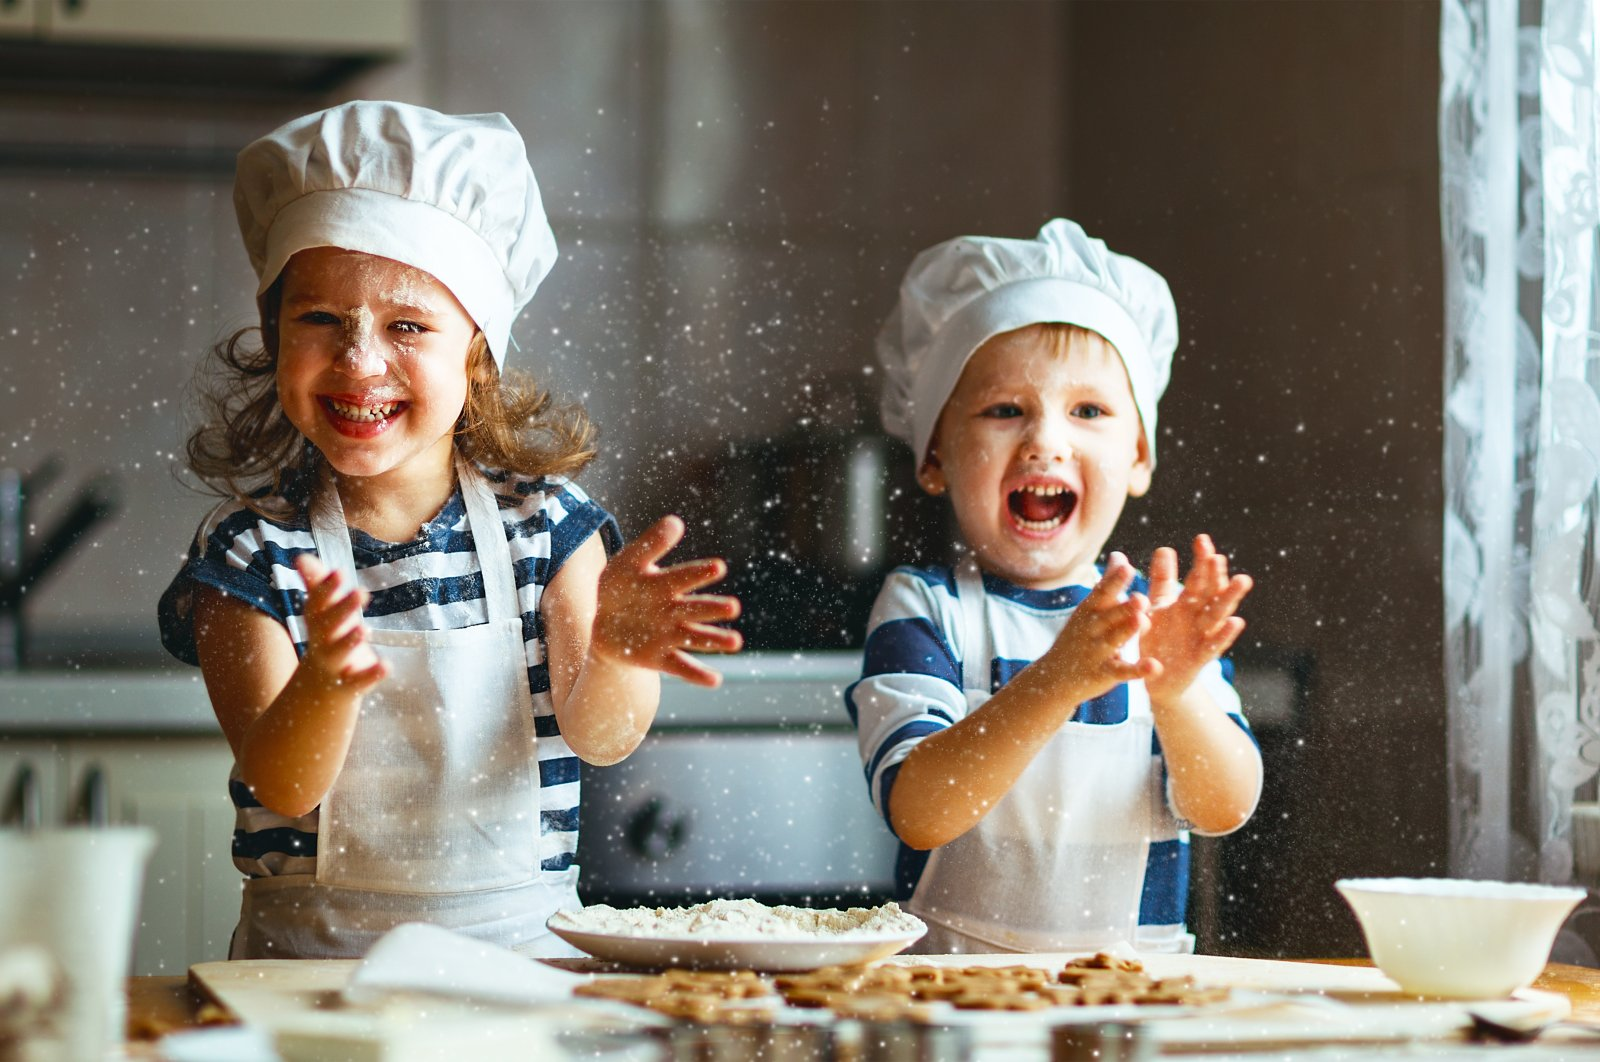 Kids cooking in the kitchen. (Shutterstock Photo)